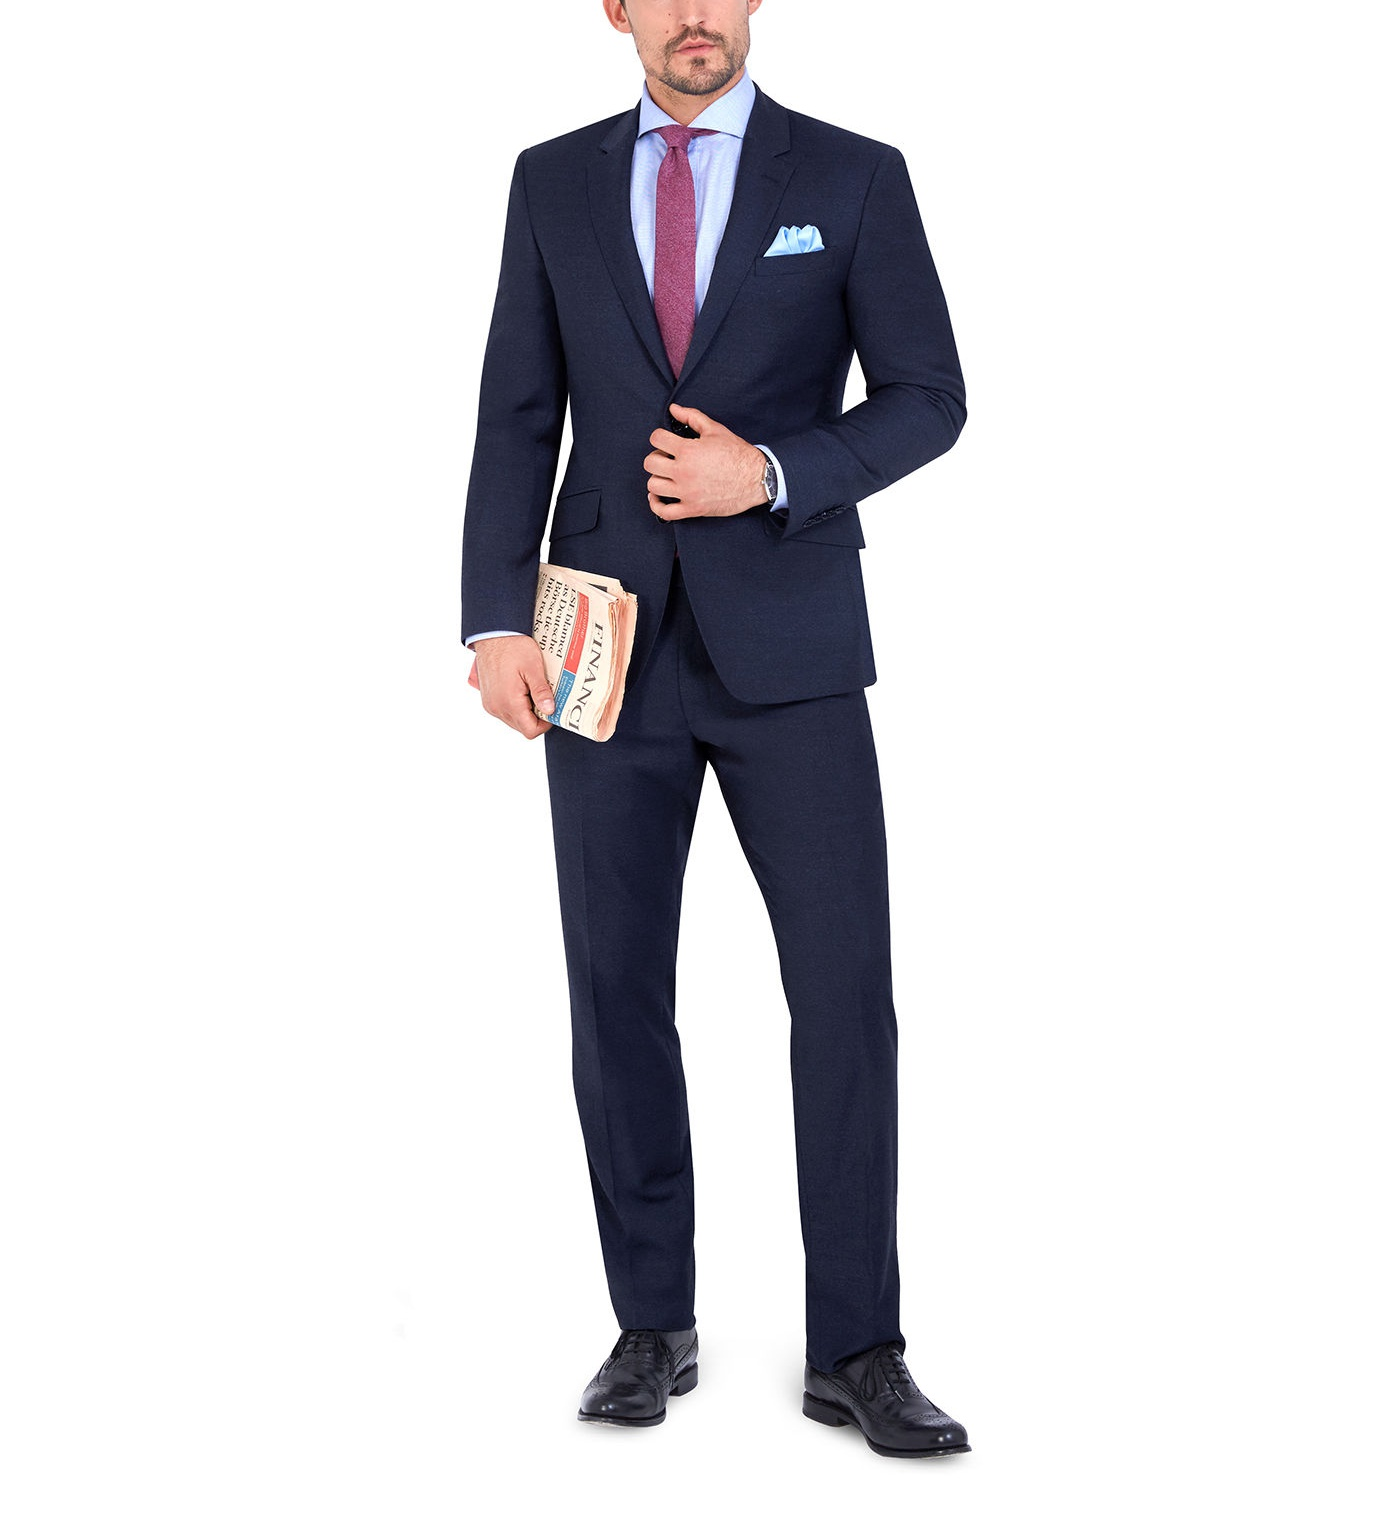 T.M.Lewin Chester Slim Fit Suit Trousers in Indigo Wool Cashmere Blend